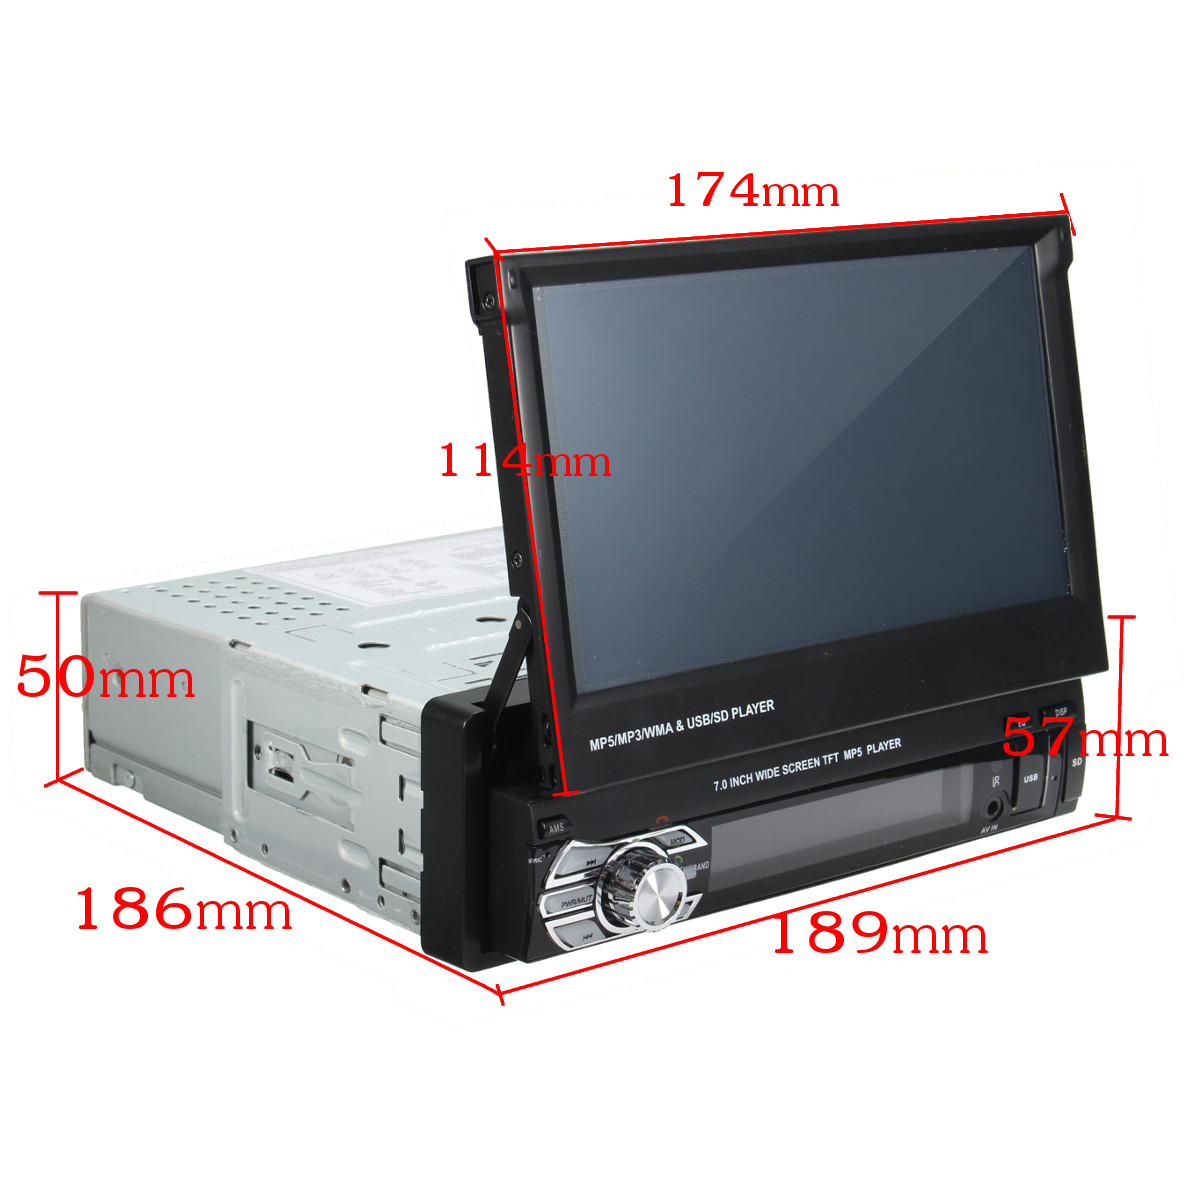 7 Inch 1 DIN Car Audio Stereo Car MP3 MP4 MP5 Player Bluetooth Card USB Flash Disk Machine GPS Radio